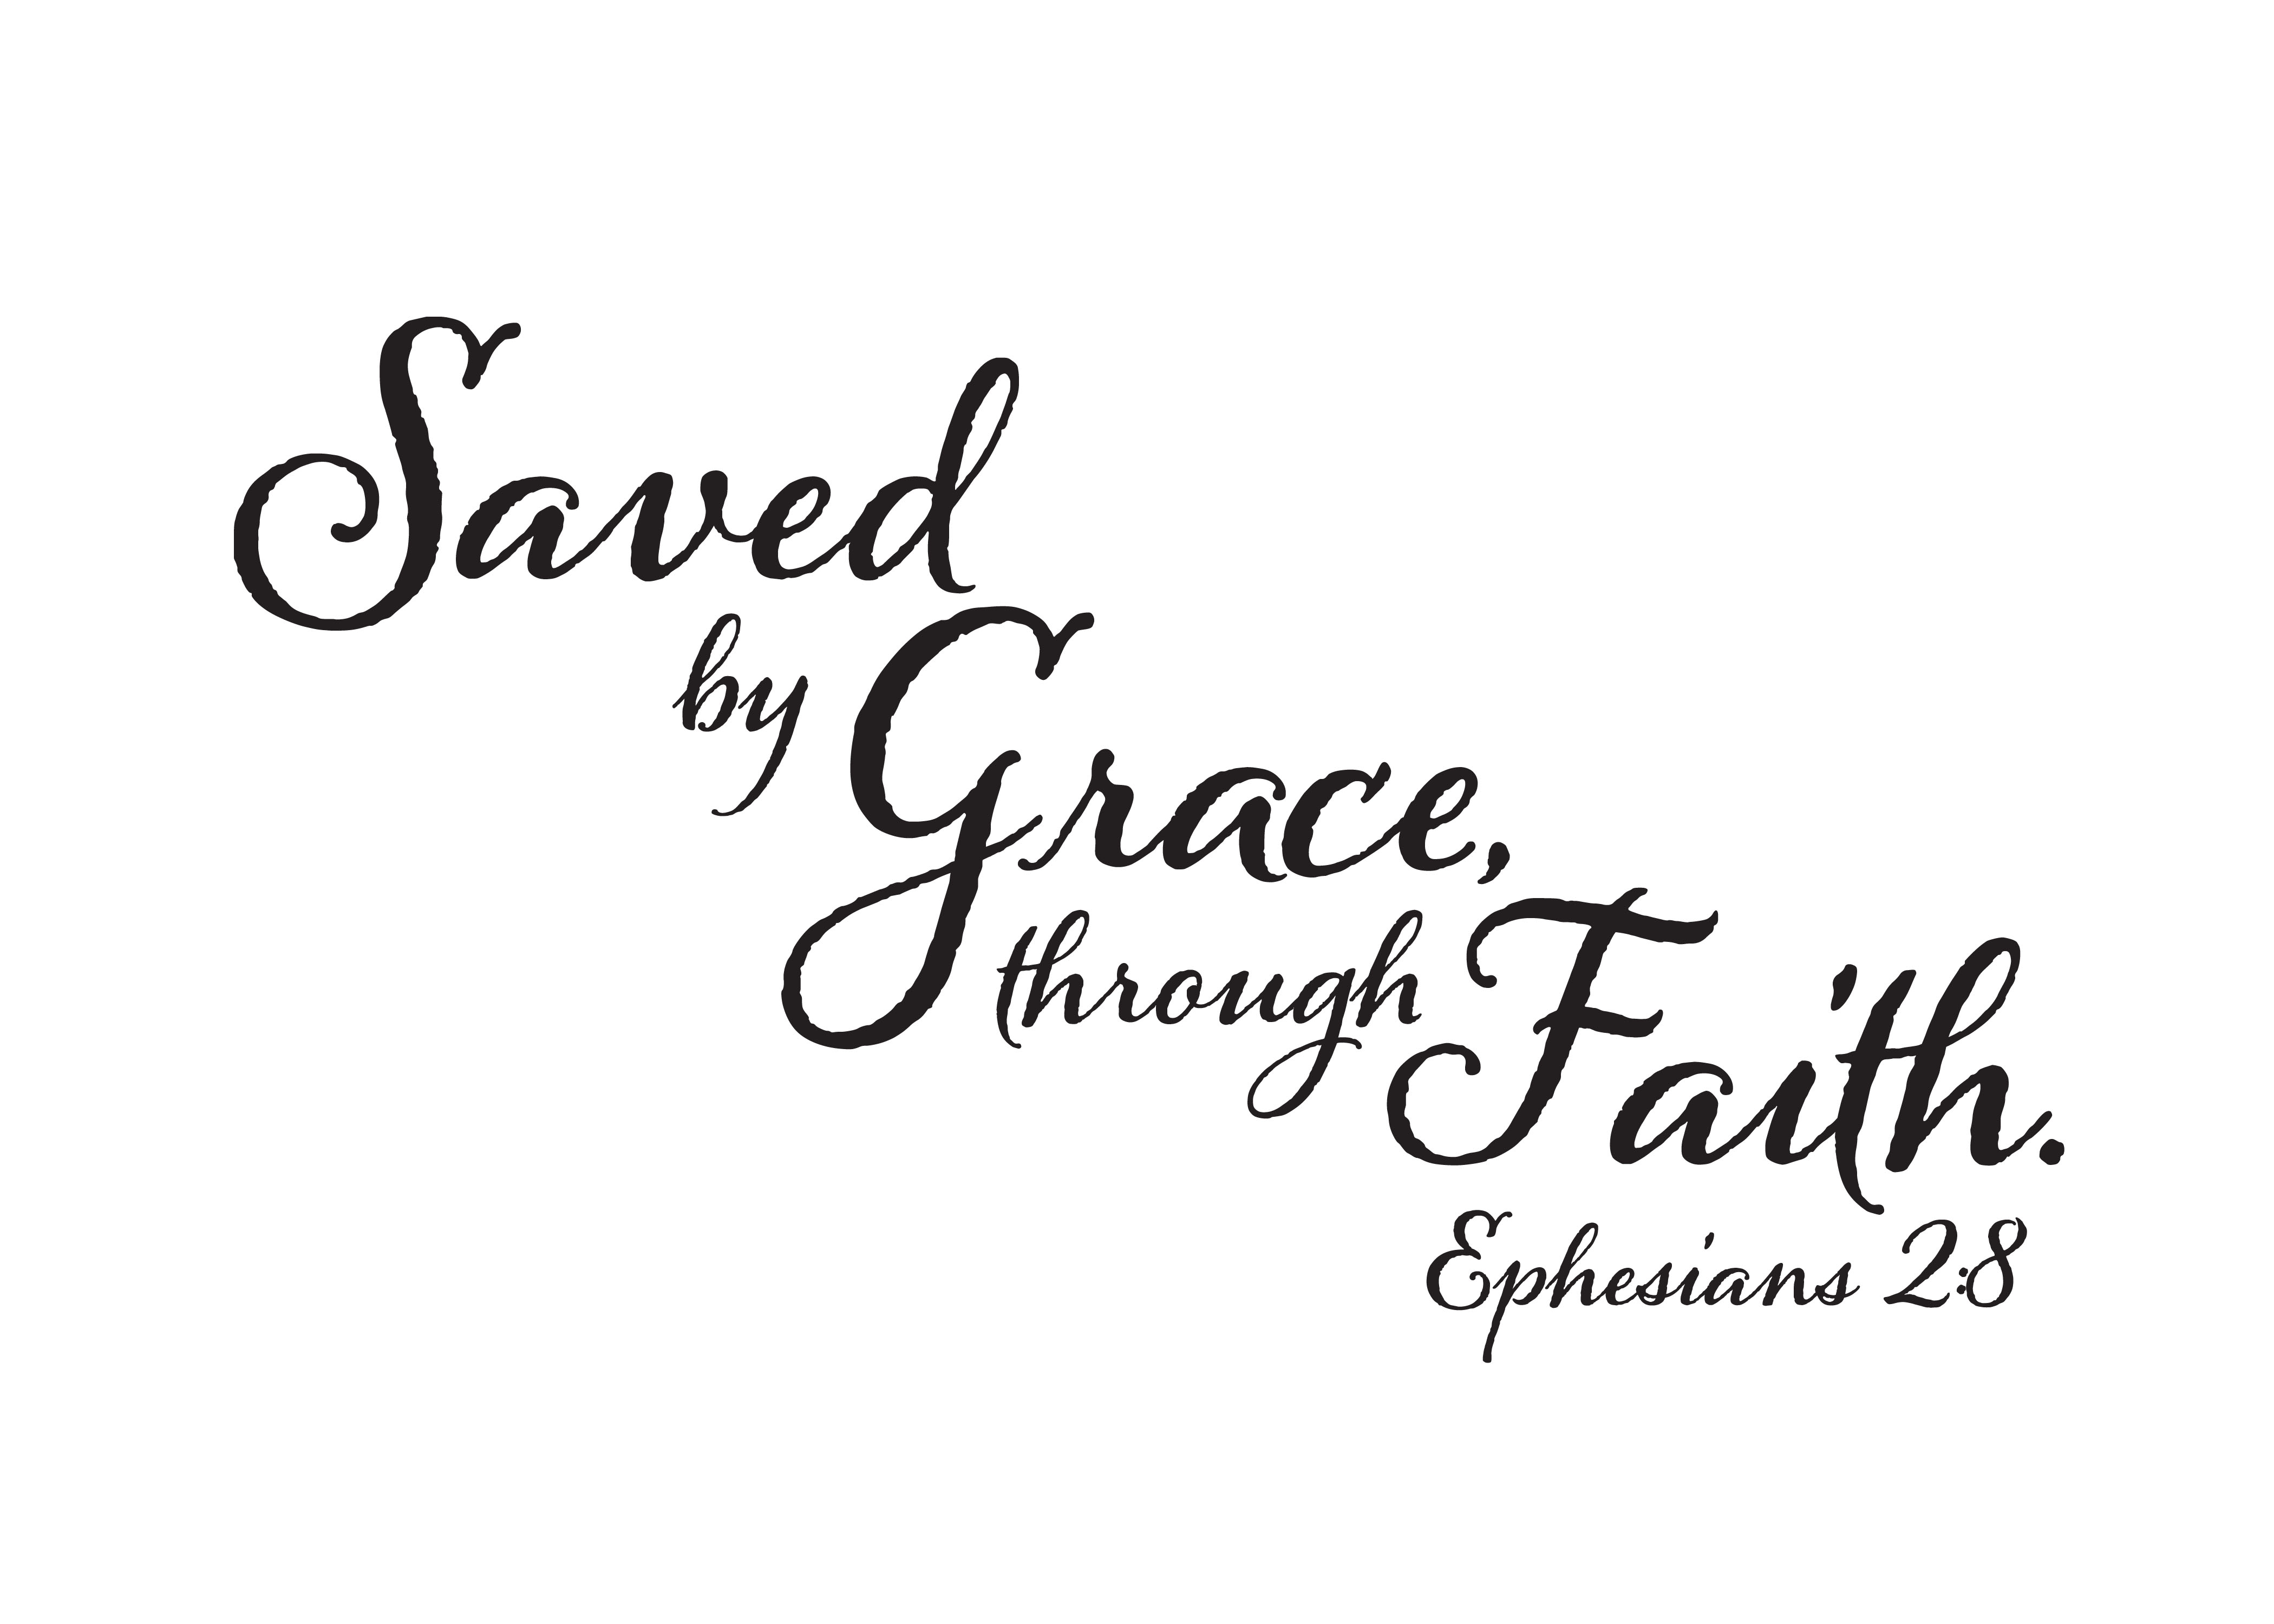 Ephesians 28 Vinyl Wall Decal 1 Saved by Grace through Faith : Ephesians 2 8 proof from wildeyessigns.com size 4200 x 3000 jpeg 313kB